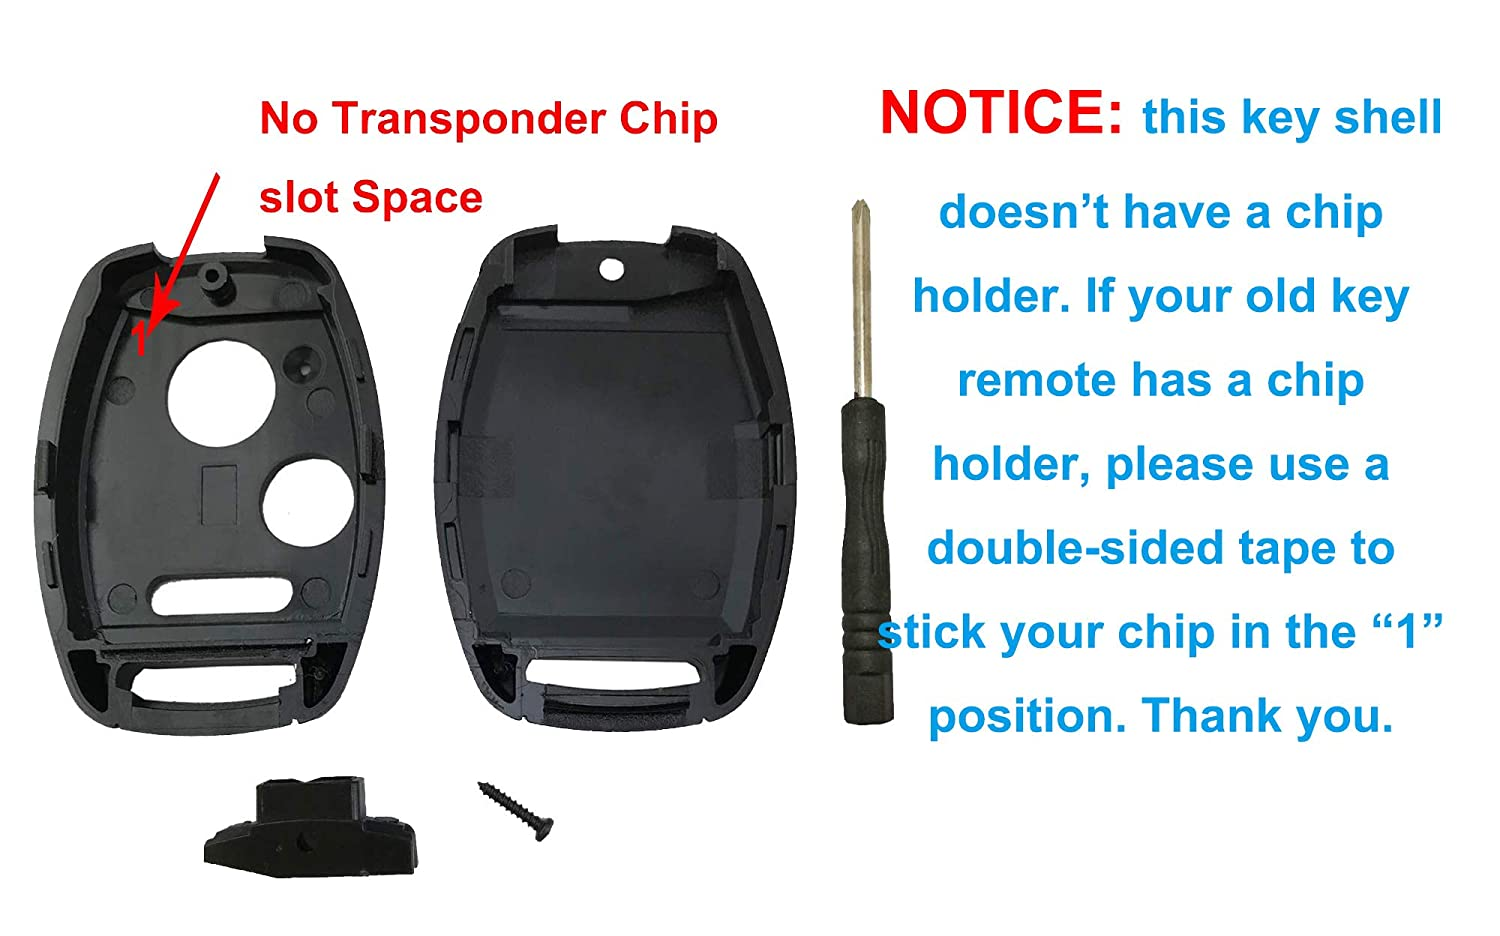 2 Pcs Replacement Key Fob Shell Case Fit for Honda 2010-2011 Accord Crosstour //2006-2011 Civic// 2007-2013 CR-V 2011-2015 CR-Z 2009-2013 Fit 2011-2014 Odyssey 3 Buttons Car Key Fob Cover Casing